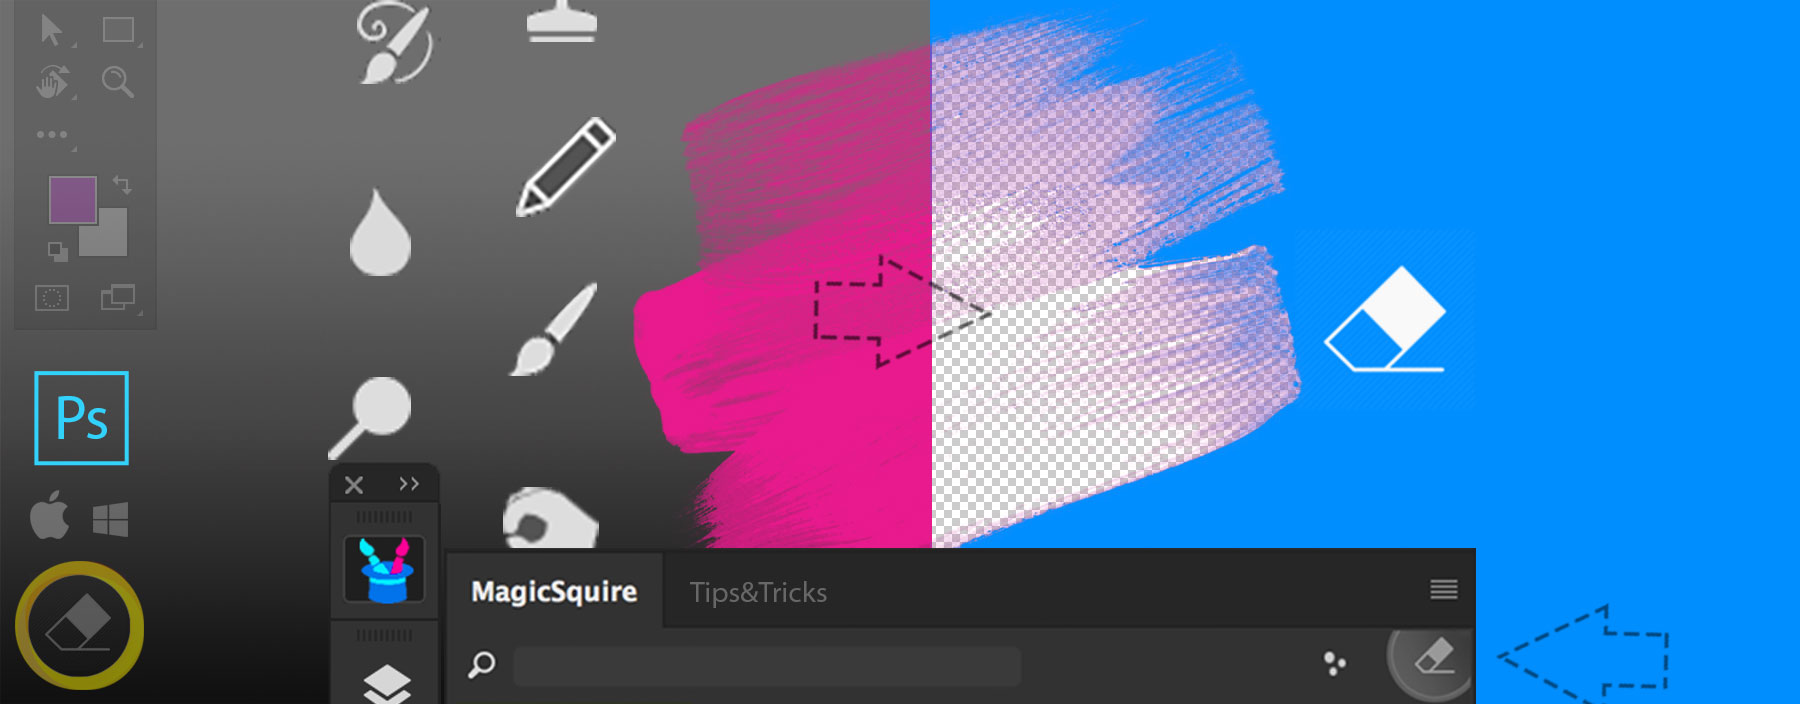 MagicSquire: Turn any Tool into Eraser in Photoshop with one click!